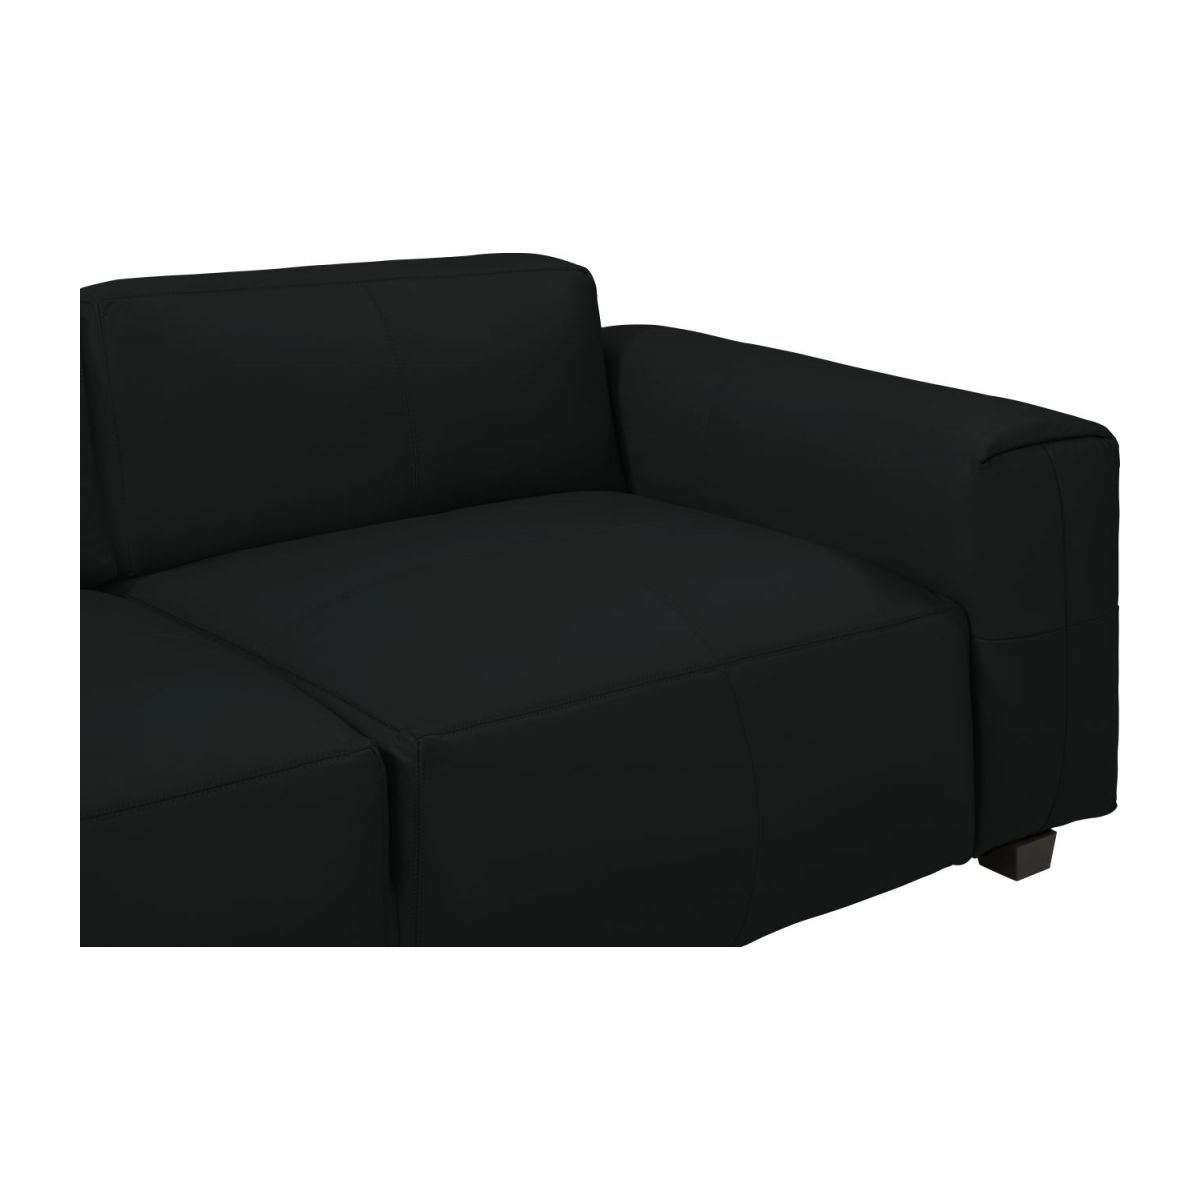 4 seater sofa in Savoy semi-aniline leather, platin black n°7